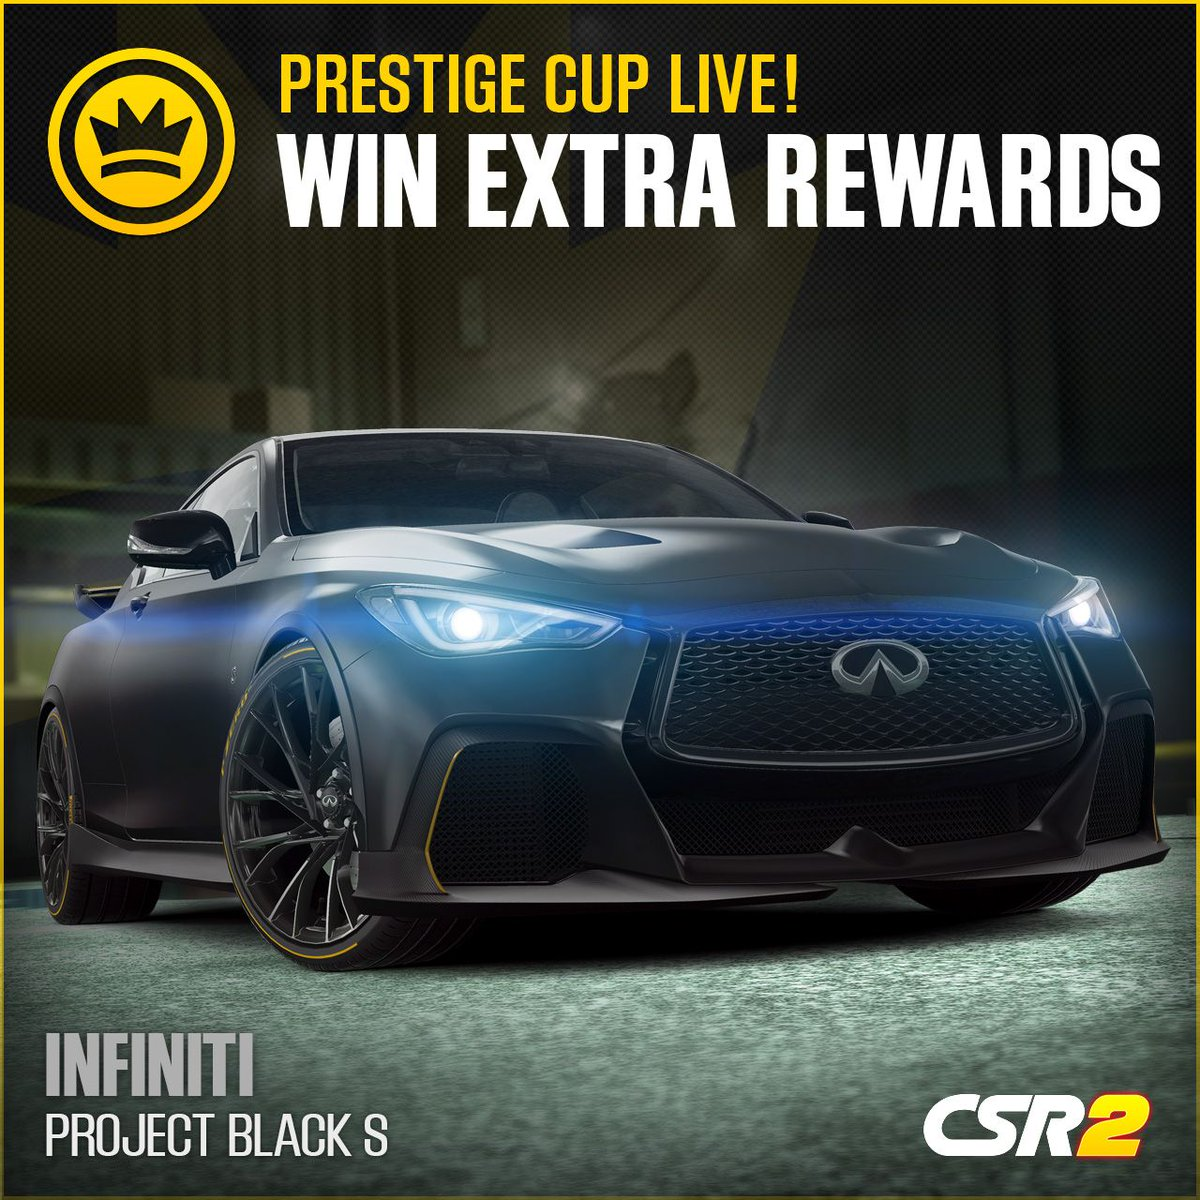 This is your last chance to win those extra rewards in the Prestige cup! #CSR2 https://t.co/ery82oACAA